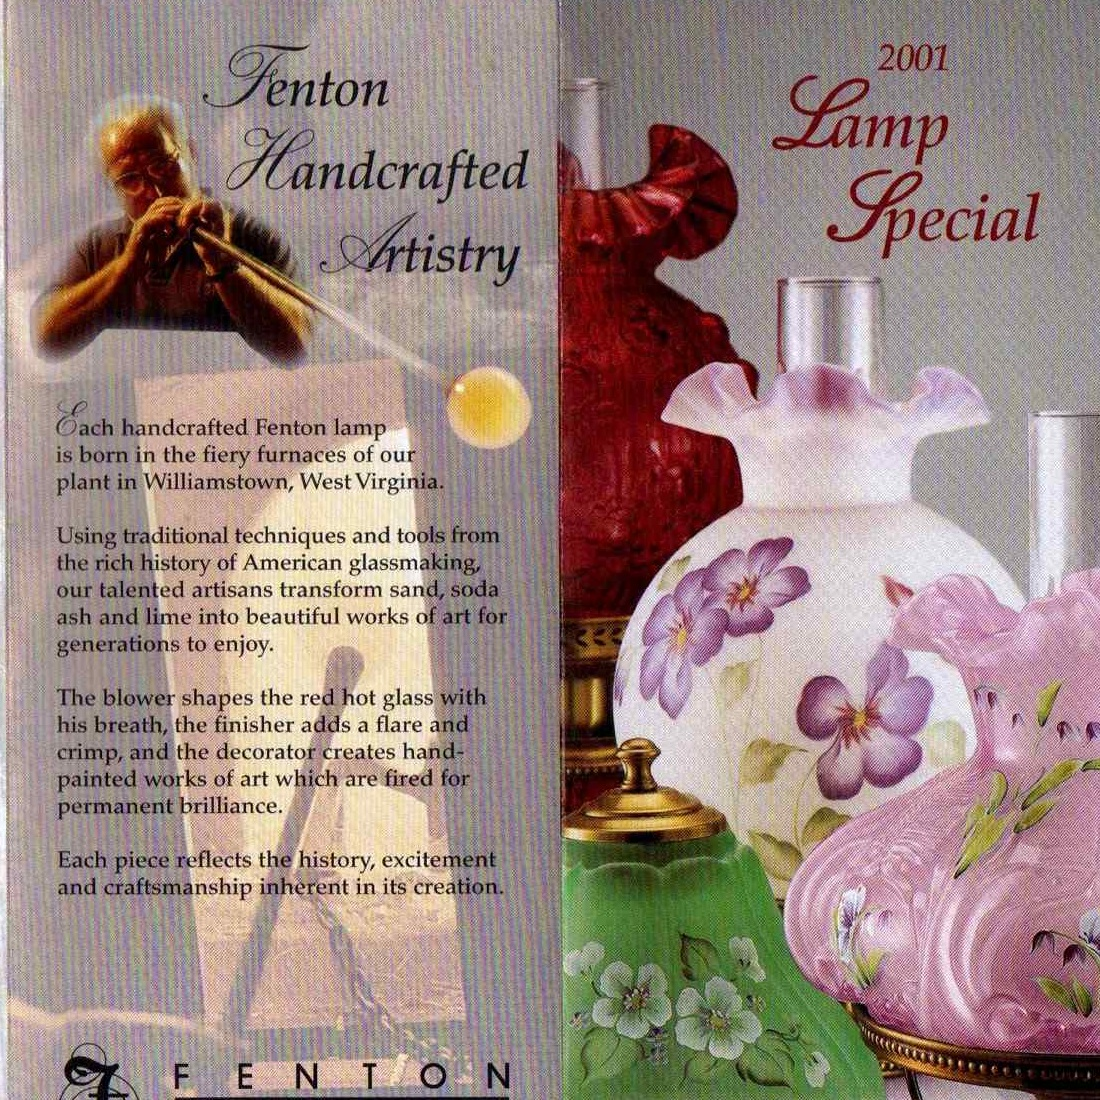 2001 Lamp Special